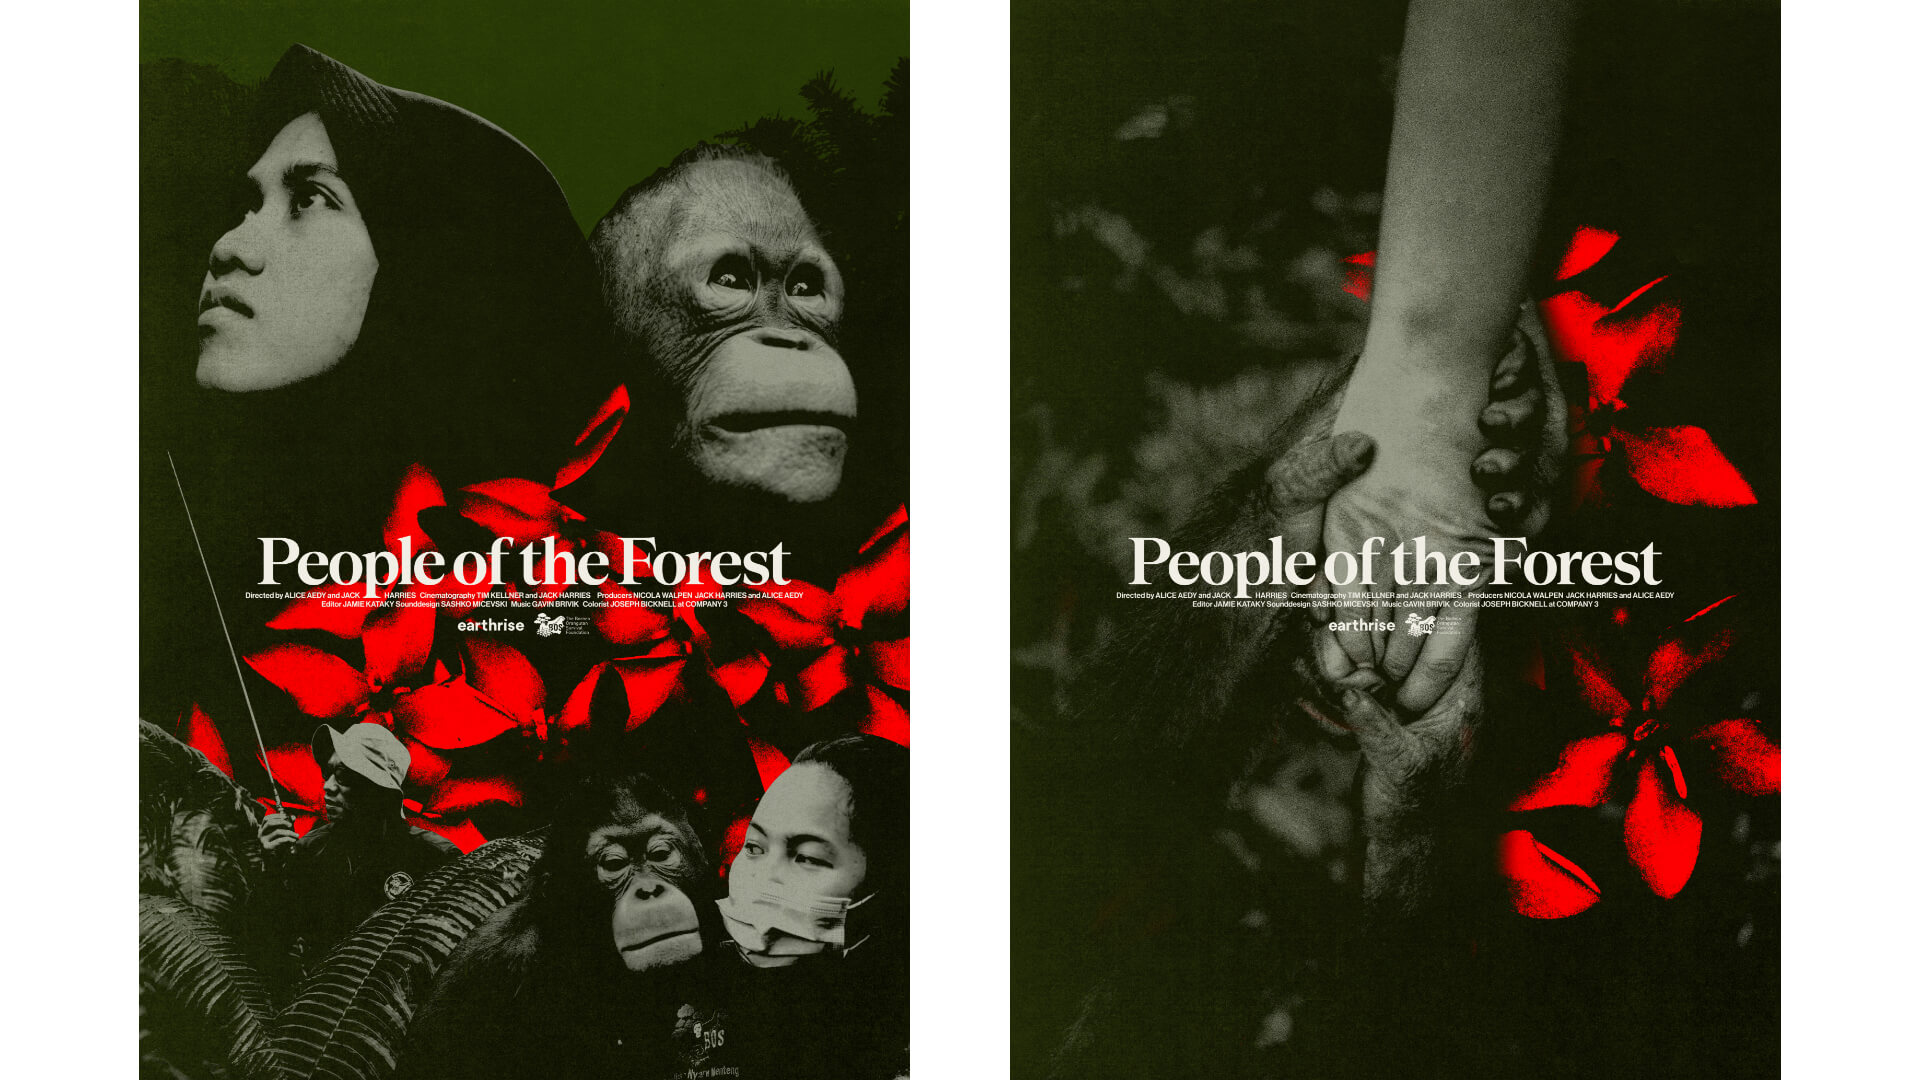 People of the Forest film posters